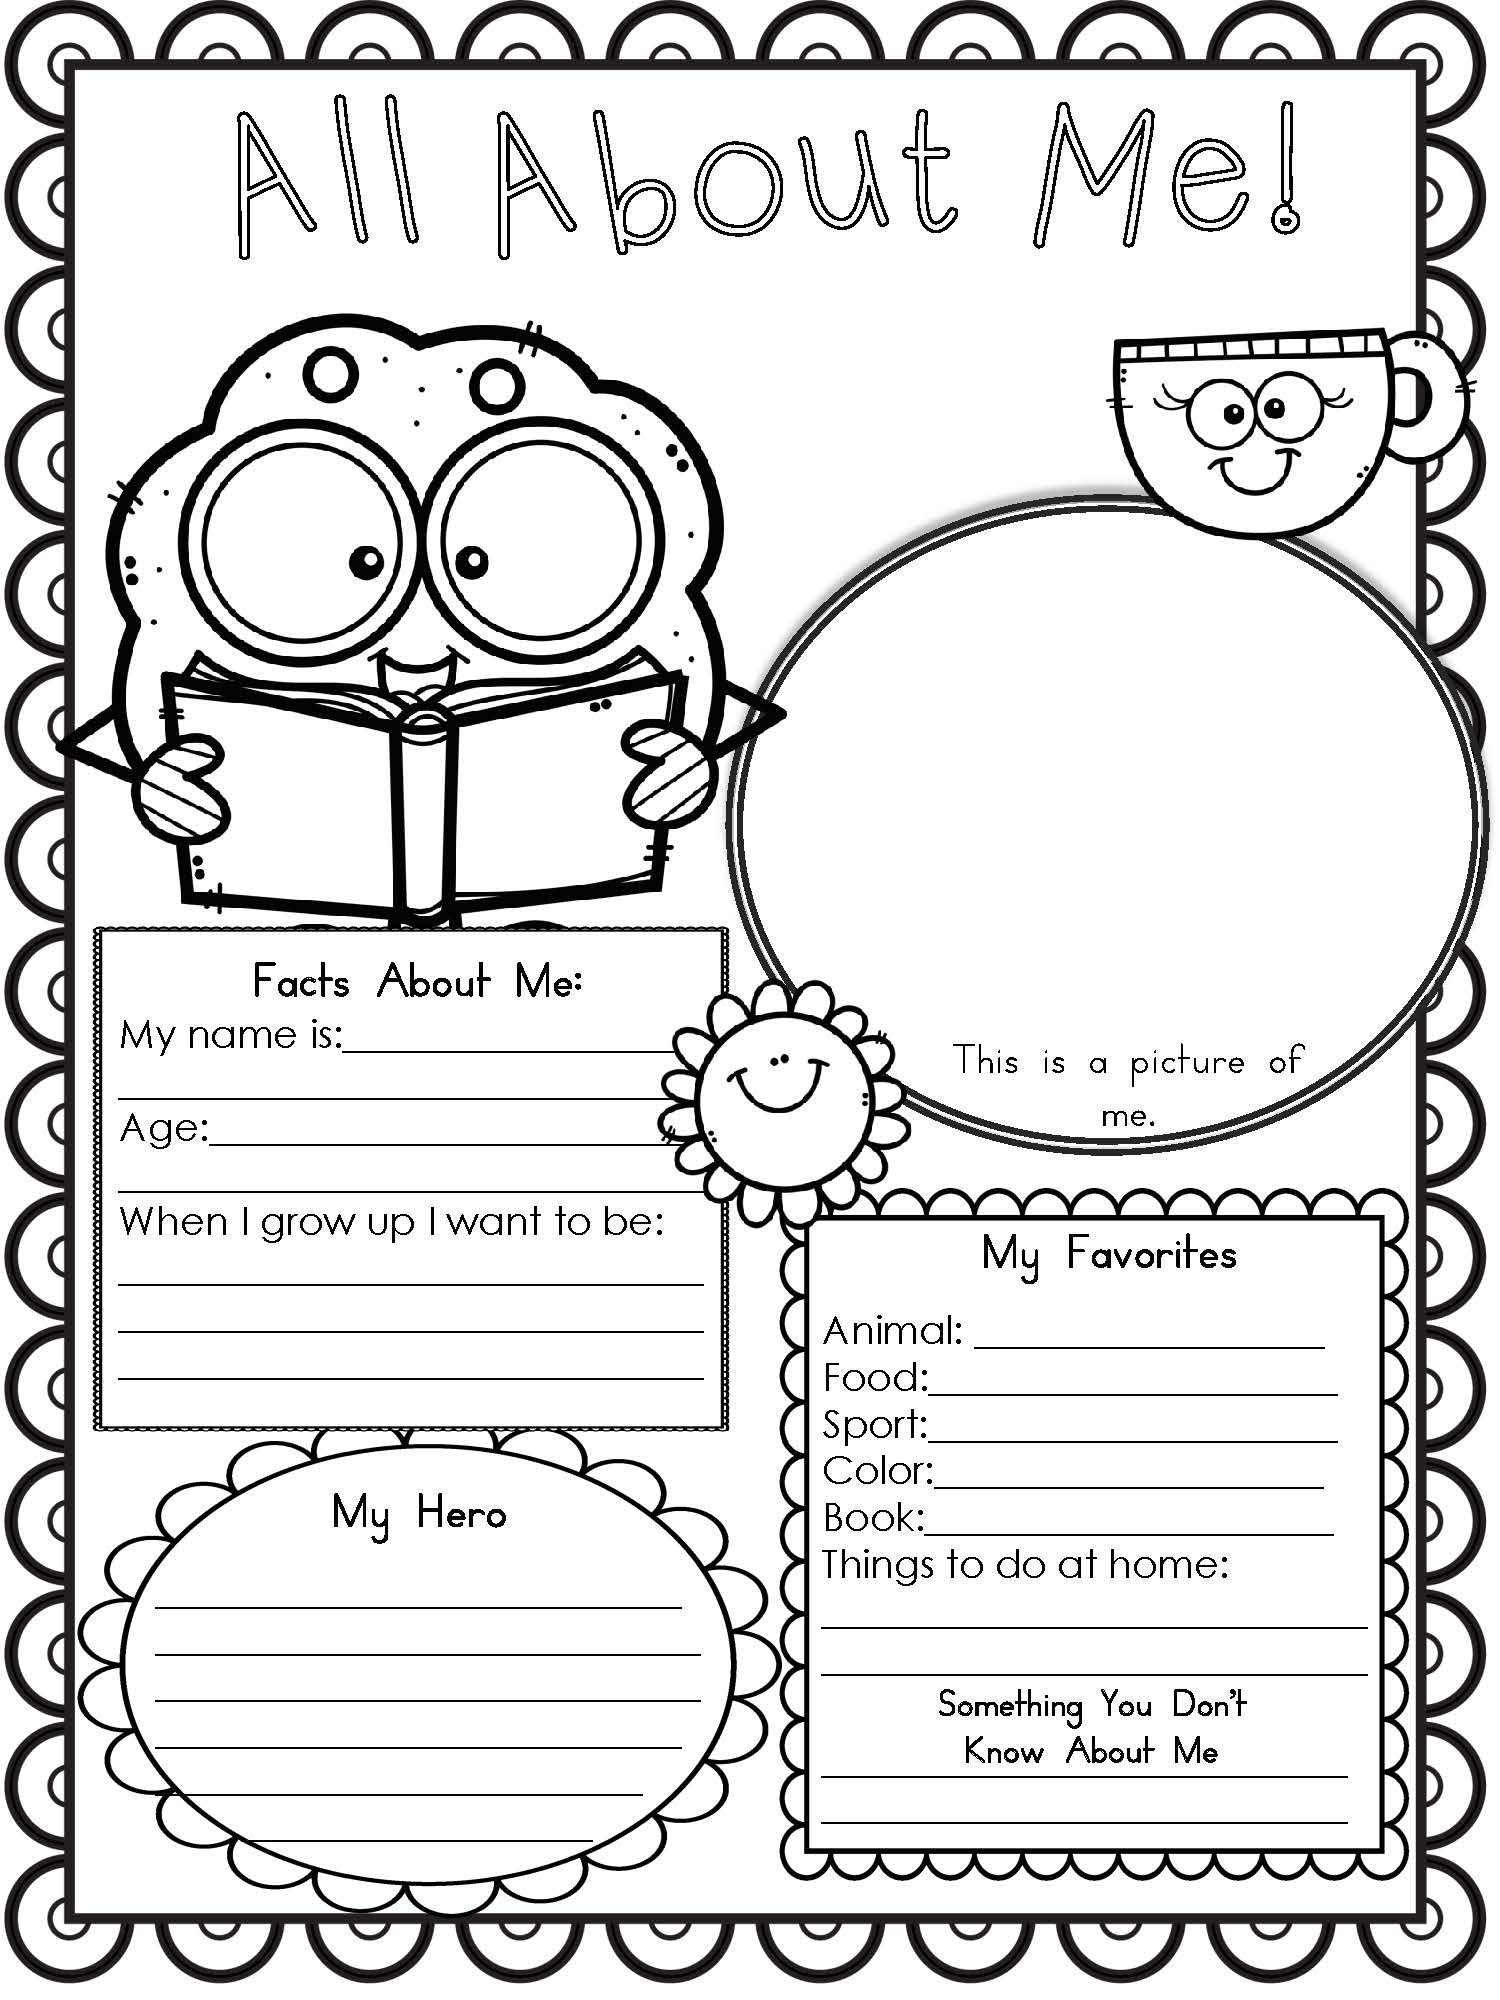 Best All About Me Free Printable Worksheet